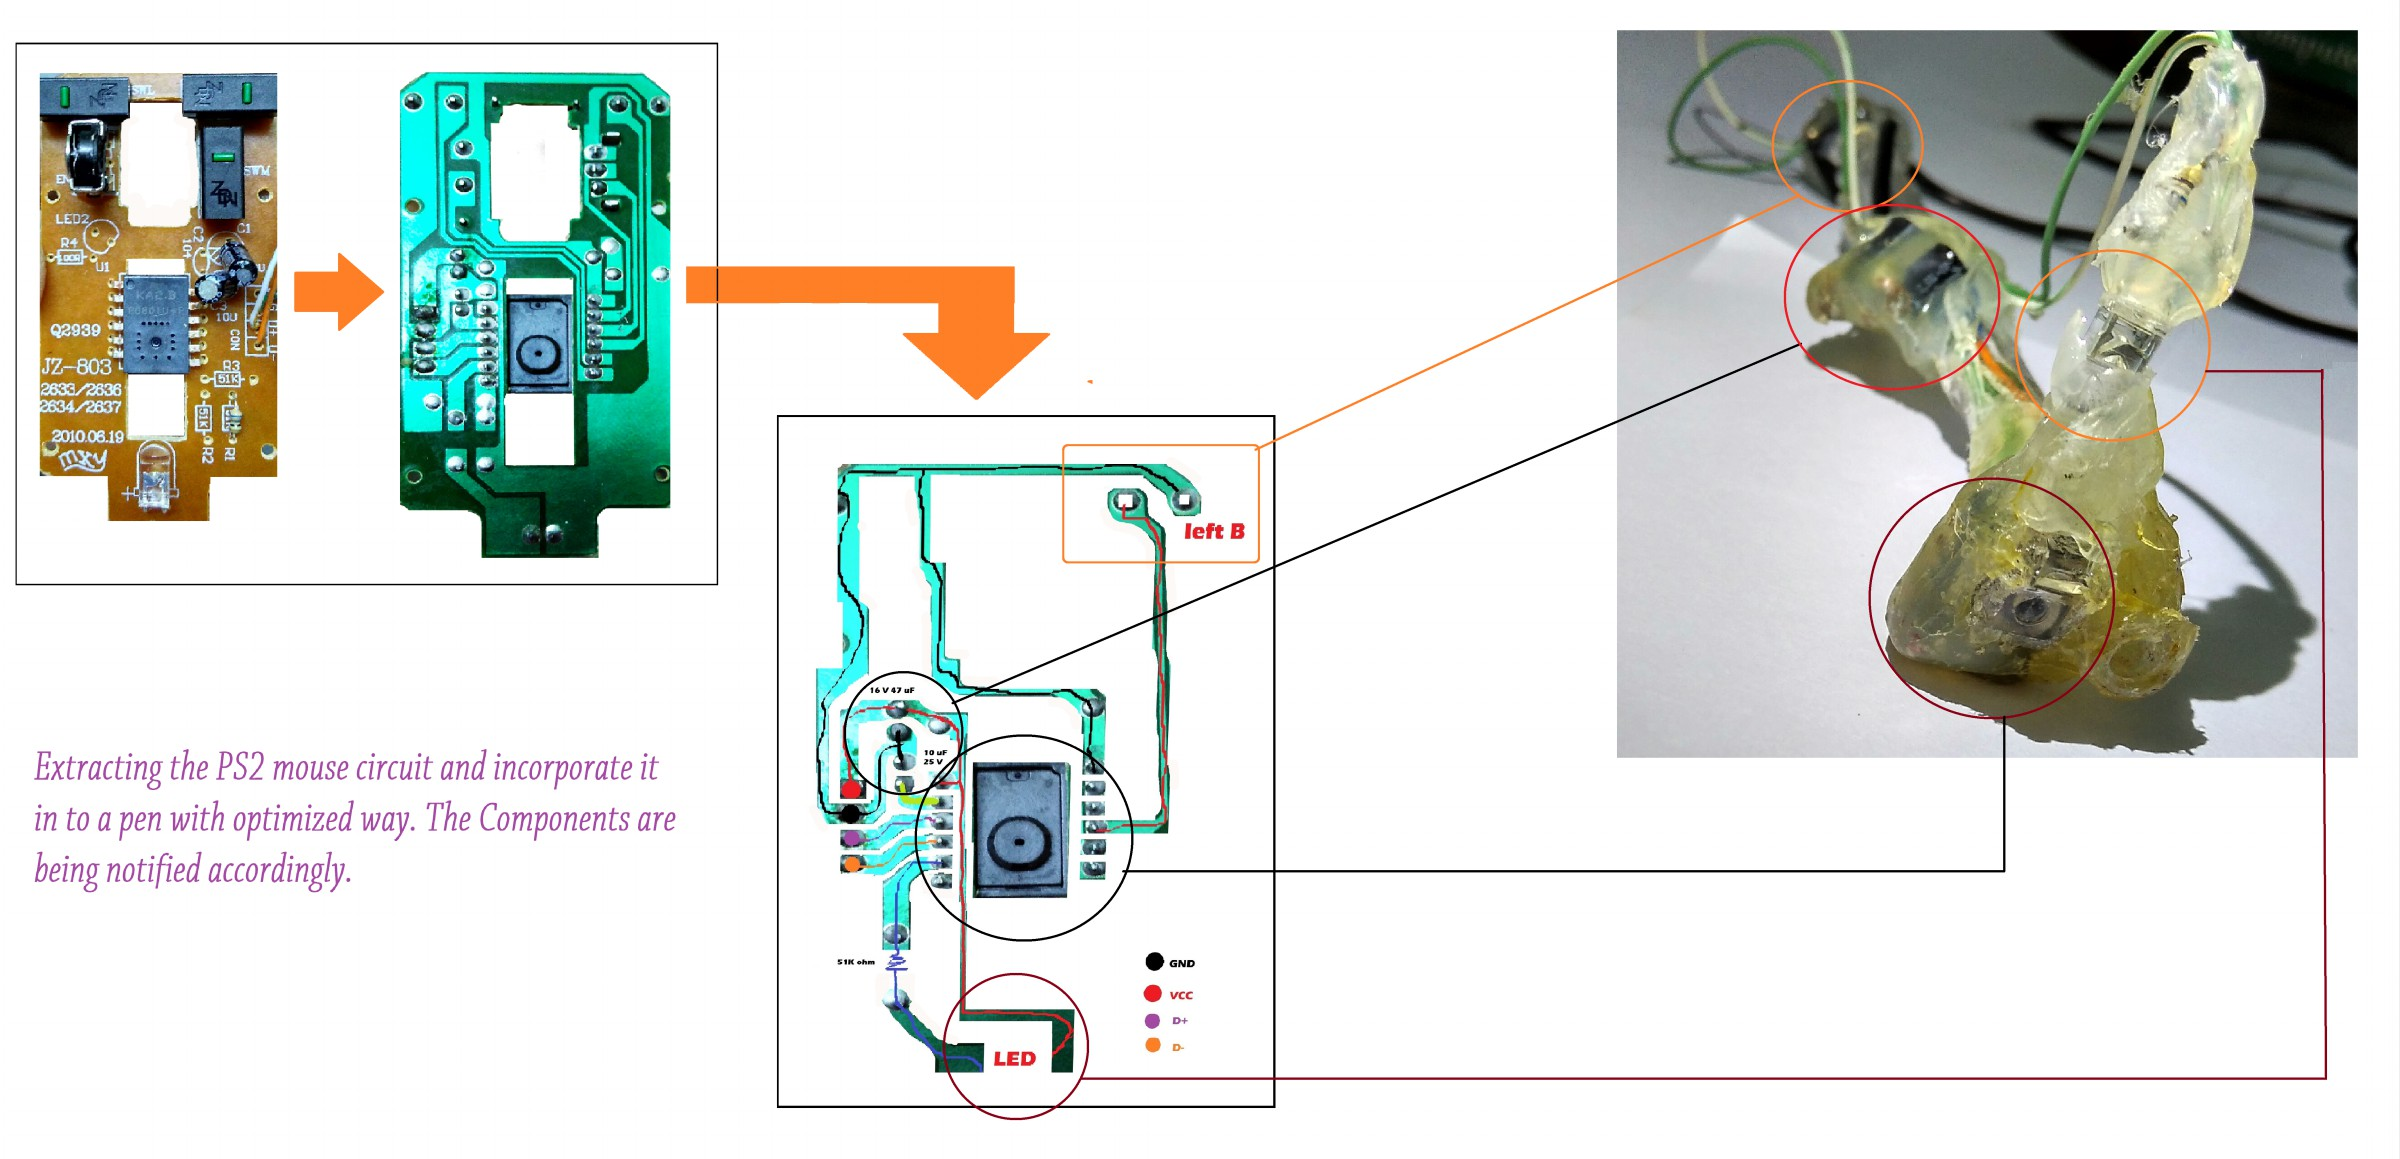 Linear Motion Plotter Ps 2 Mouse Wiring Diagram Free Picture Extraction 8x11mtpidy